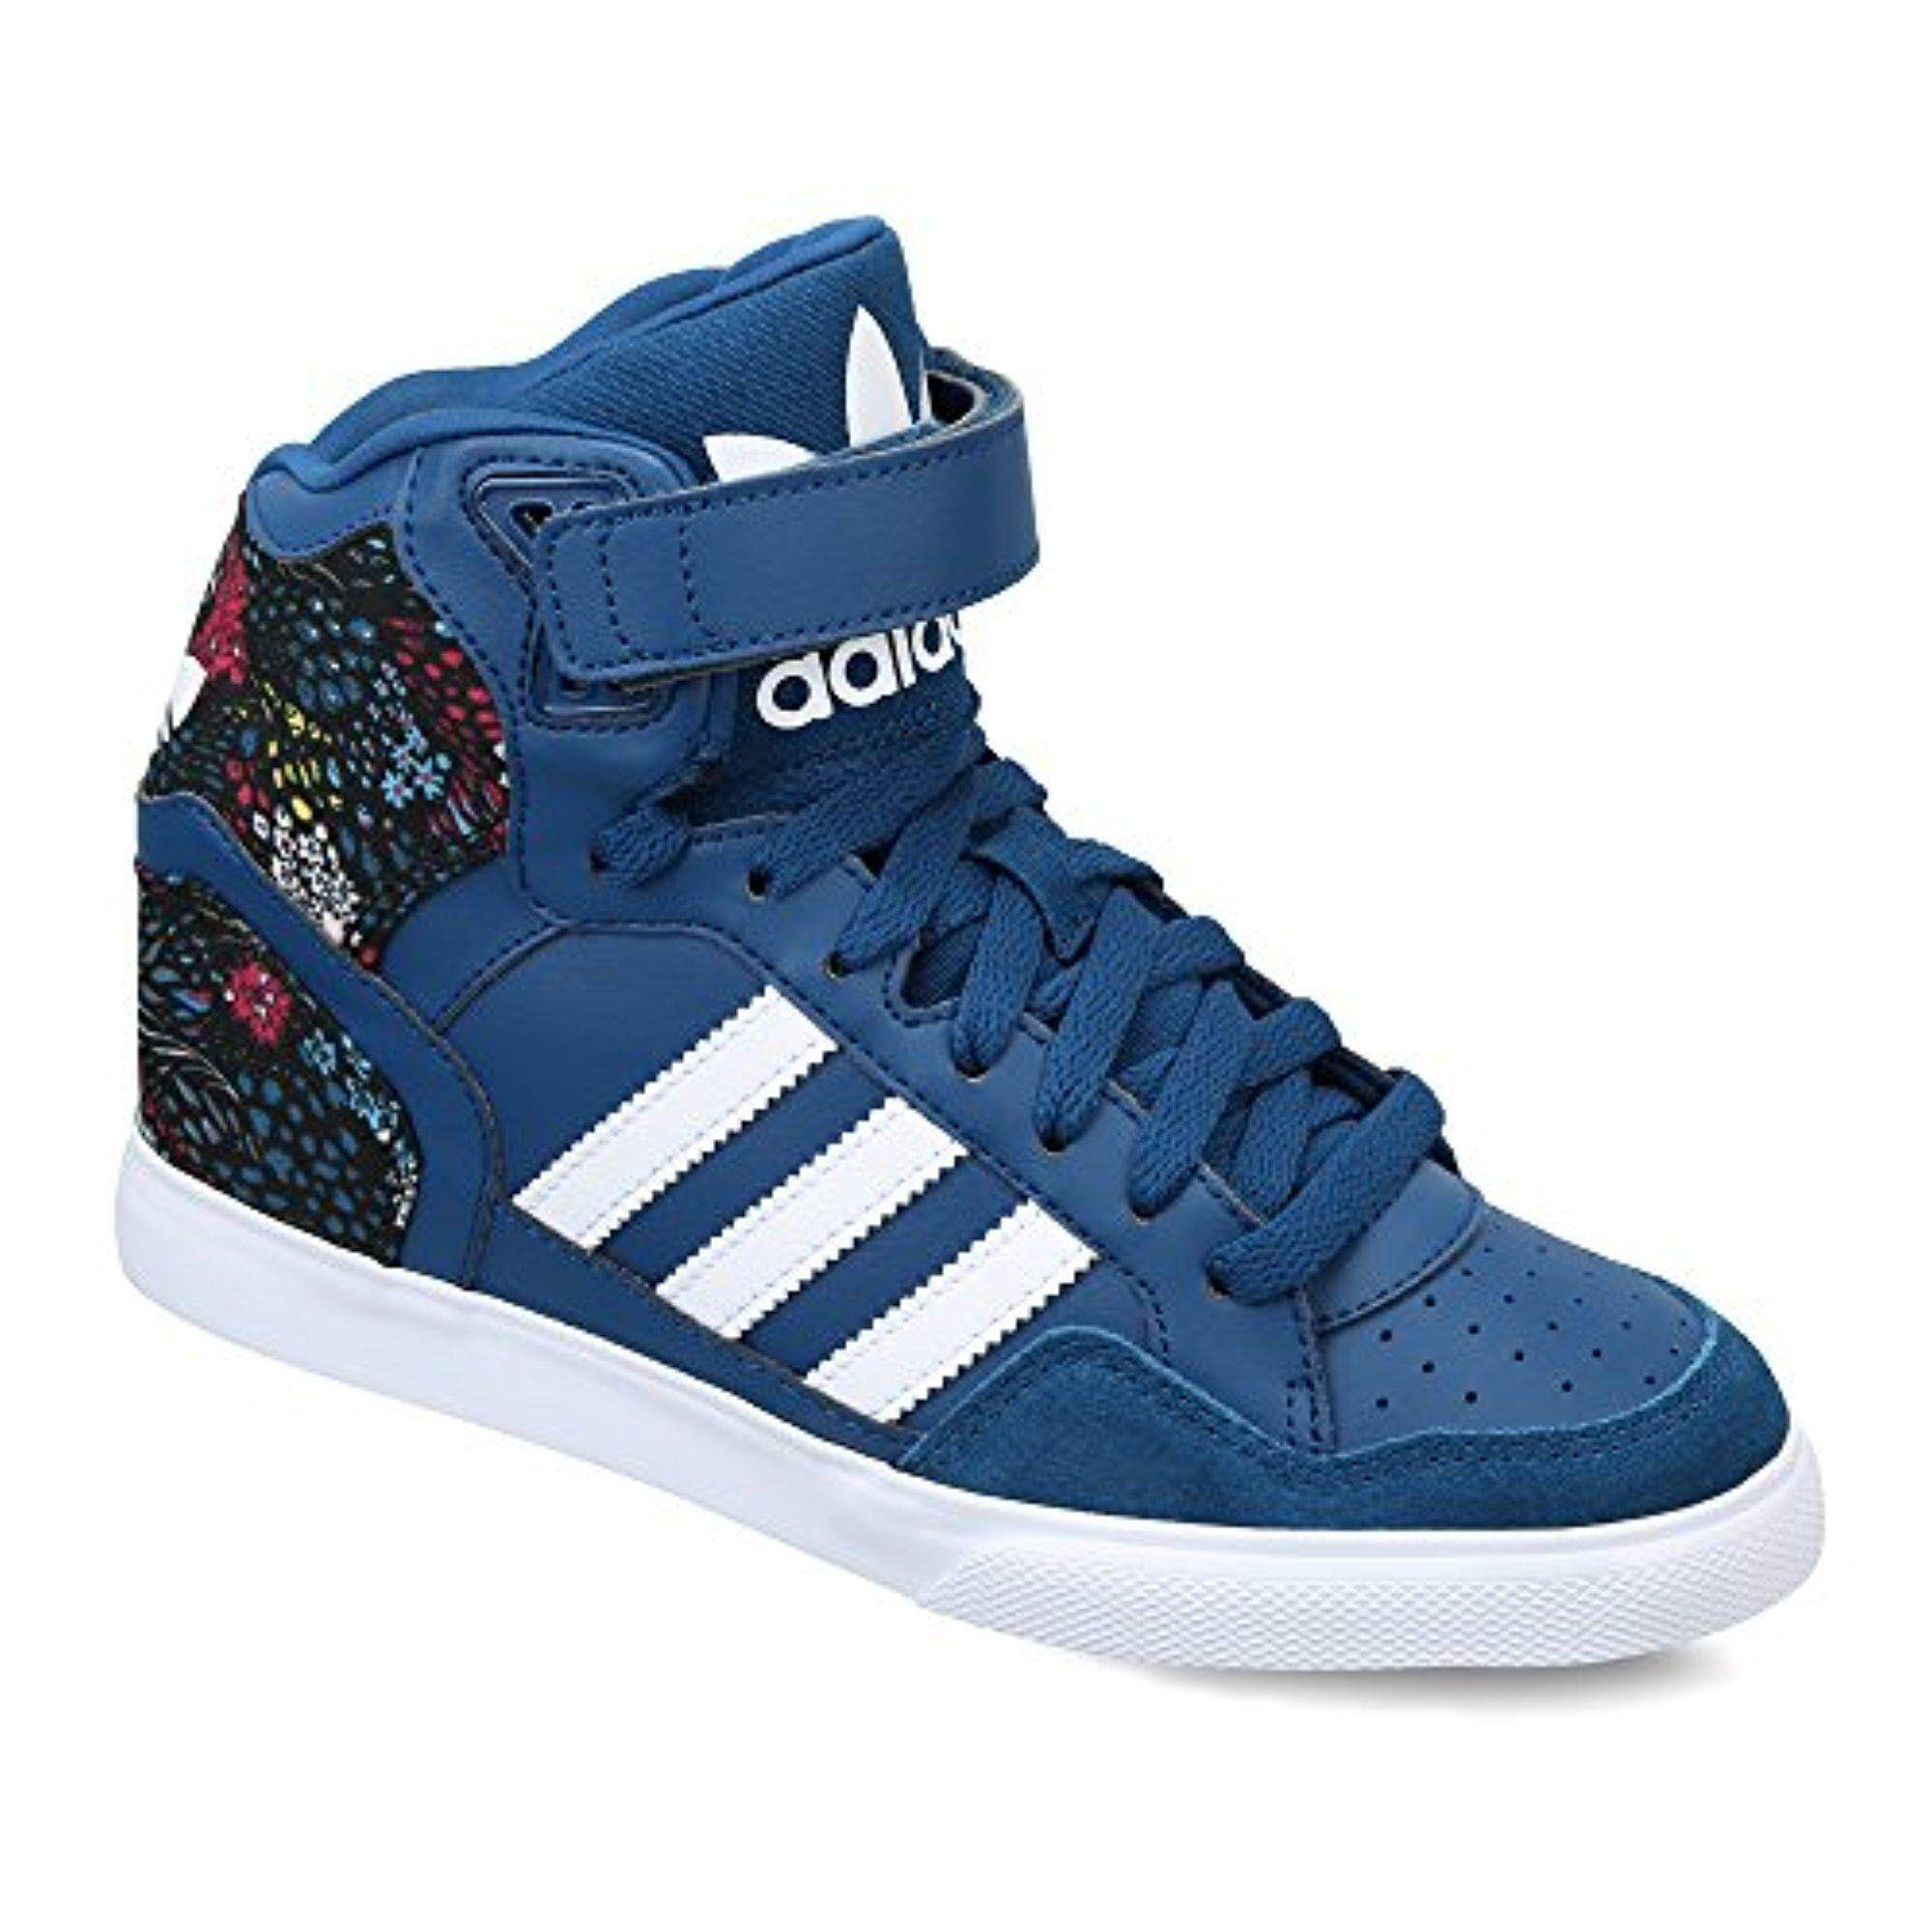 adidas Originals Women s Extaball Up W Tecste and Ftwwht Leather Sneakers -  6 UK India 05d74d7f1